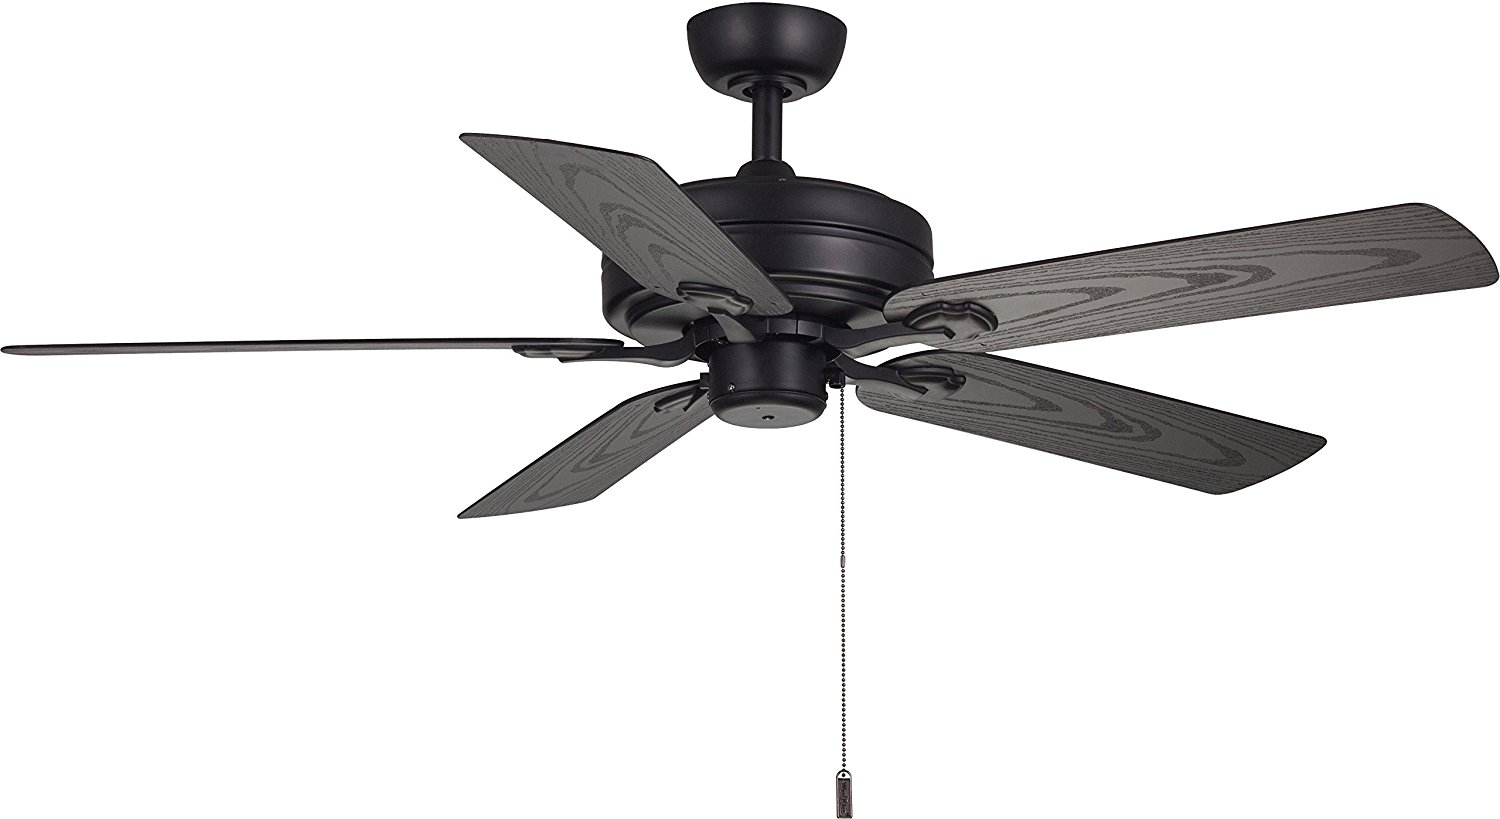 telano black ceiling architecture fan light love throughout wayfair ll inspirations info you outdoor fans with